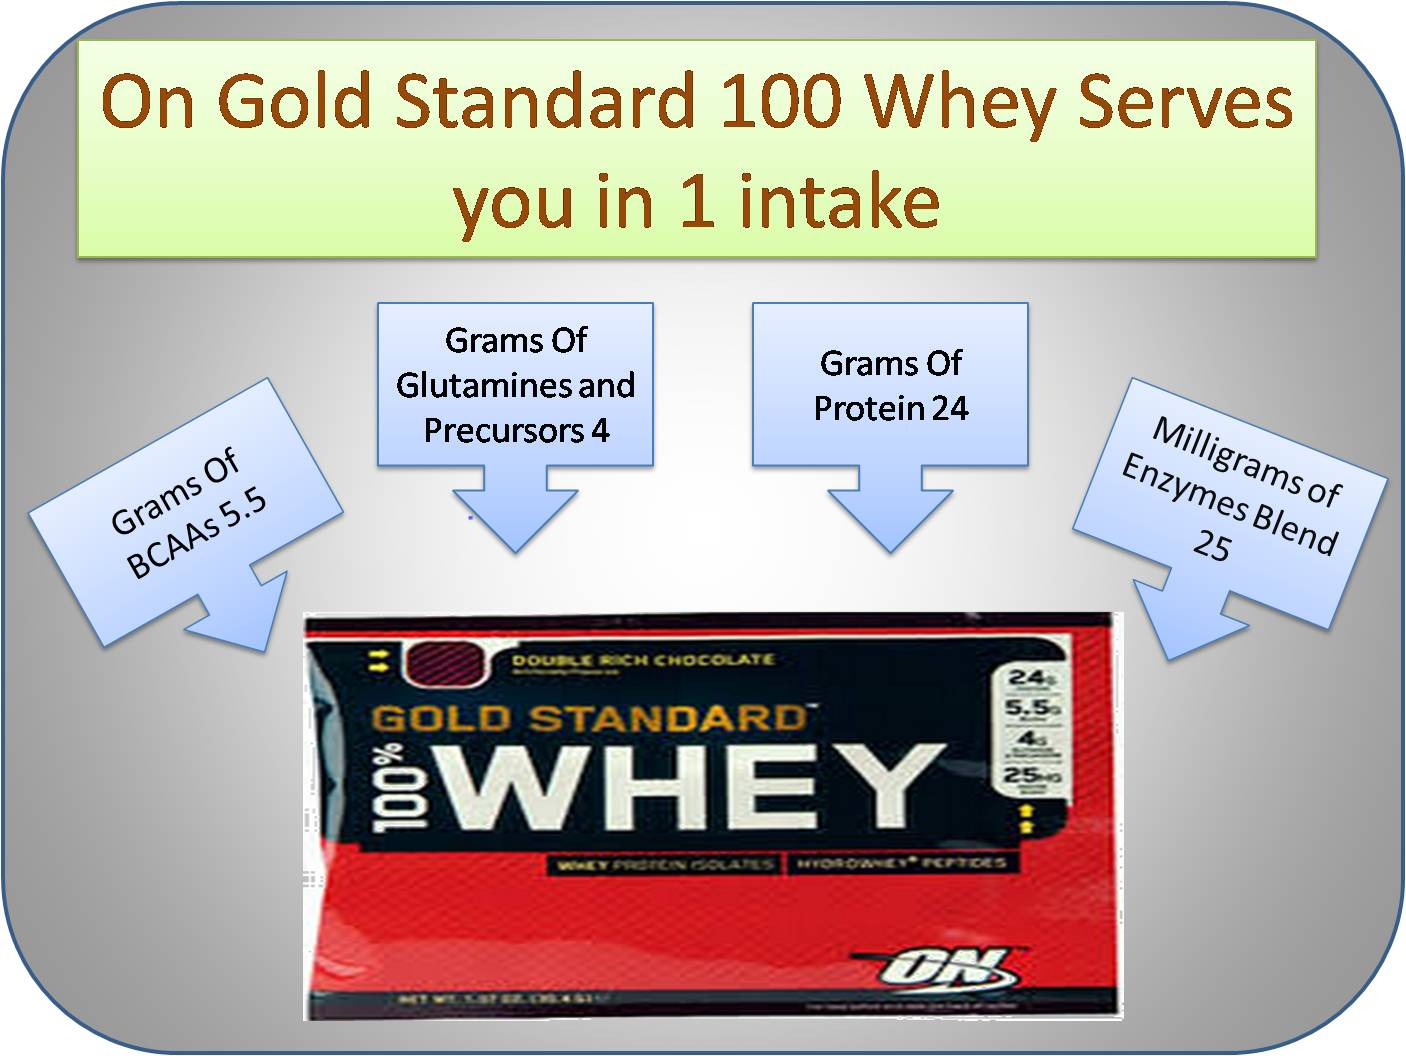 On Gold Standard 100 Whey Serves you in 1 Intake